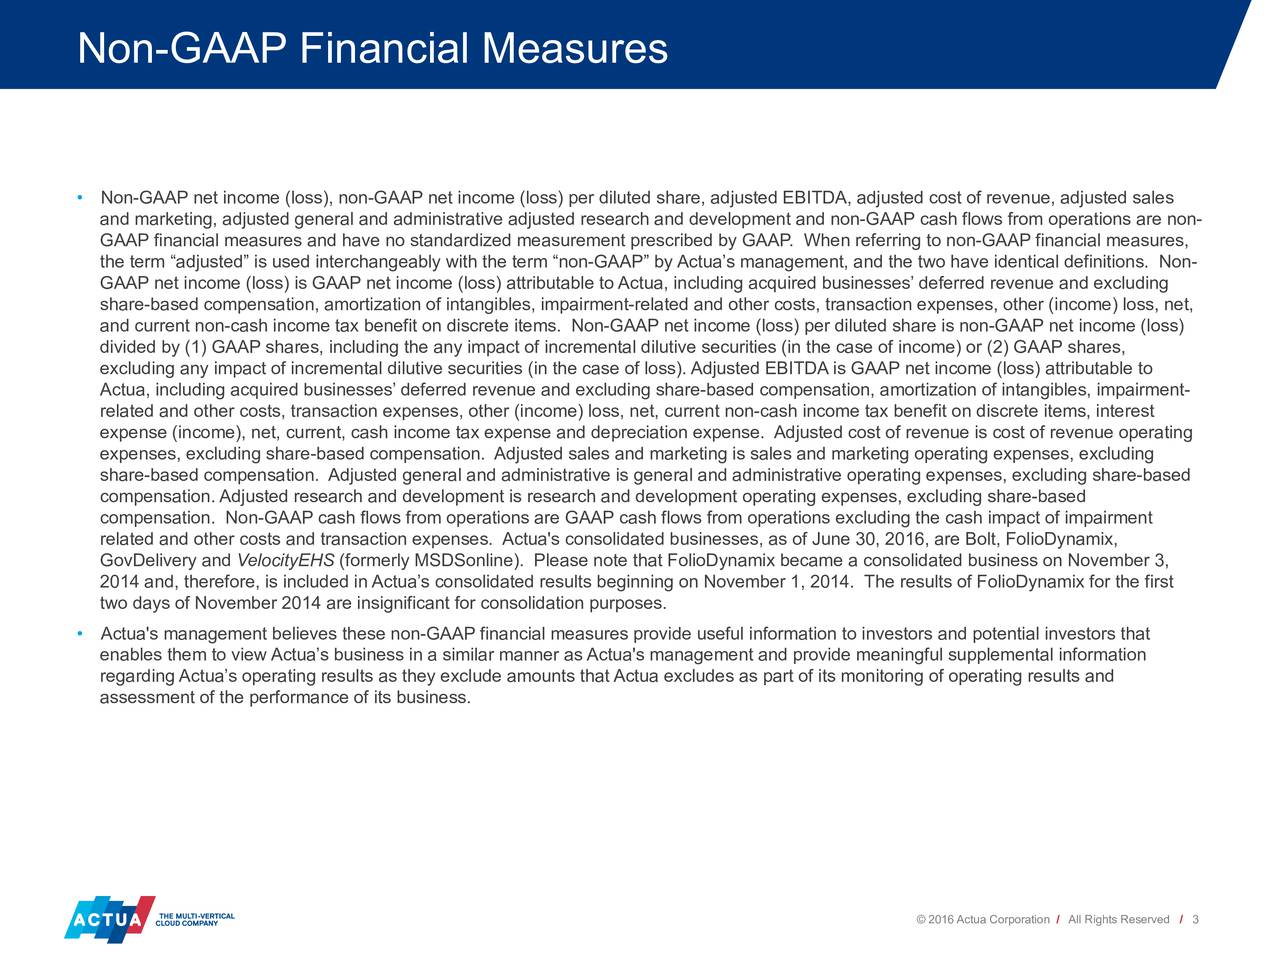 Non-GAAP net income (loss), non-GAAP net income (loss) per diluted share, adjusted EBITDA, adjusted cost of revenue, adjusted sales and marketing, adjusted general and administrative adjusted research and development and non-GAAP cash flows from operations are non- GAAP financial measures and have no standardized measurement prescribed by GAAP. When referring to non-GAAP financial measures, the term adjusted is used interchangeably with the term non-GAAP by Actuas management, and the two have identical definitions. Non- GAAP net income (loss) is GAAP net income (loss) attributable to Actua, including acquired businesses deferred revenue and excluding share-based compensation, amortization of intangibles, impairment-related and other costs, transaction expenses, other (income) loss, net, and current non-cash income tax benefit on discrete items. Non-GAAP net income (loss) per diluted share is non-GAAP net income (loss) divided by (1) GAAP shares, including the any impact of incremental dilutive securities (in the case of income) or (2) GAAP shares, excluding any impact of incremental dilutive securities (in the case of loss). Adjusted EBITDA is GAAP net income (loss) attributable to Actua, including acquired businesses deferred revenue and excluding share-based compensation, amortization of intangibles, impairment- related and other costs, transaction expenses, other (income) loss, net, current non-cash income tax benefit on discrete items, interest expense (income), net, current, cash income tax expense and depreciation expense. Adjusted cost of revenue is cost of revenue operating expenses, excluding share-based compensation. Adjusted sales and marketing is sales and marketing operating expenses, excluding share-based compensation. Adjusted general and administrative is general and administrative operating expenses, excluding share-based compensation. Adjusted research and development is research and development operating expenses, excluding share-based compensation. Non-GAAP cash flows from operations are GAAP cash flows from operations excluding the cash impact of impairment related and other costs and transaction expenses. Actua's consolidated businesses, as of June 30, 2016, are Bolt, FolioDynamix, GovDelivery and VelocityEHS (formerly MSDSonline). Please note that FolioDynamix became a consolidated business on November 3, 2014 and, therefore, is included in Actuas consolidated results beginning on November 1, 2014. The results of FolioDynamix for the first two days of November 2014 are insignificant for consolidation purposes. Actua's management believes these non-GAAP financial measures provide useful information to investors and potential investors that enables them to view Actuas business in a similar manner as Actua's management and provide meaningful supplemental information regarding Actuas operating results as they exclude amounts that Actua excludes as part of its monitoring of operating results and assessment of the performance of its business. 2016 Actua Corporation / All Rights Reserved / 3